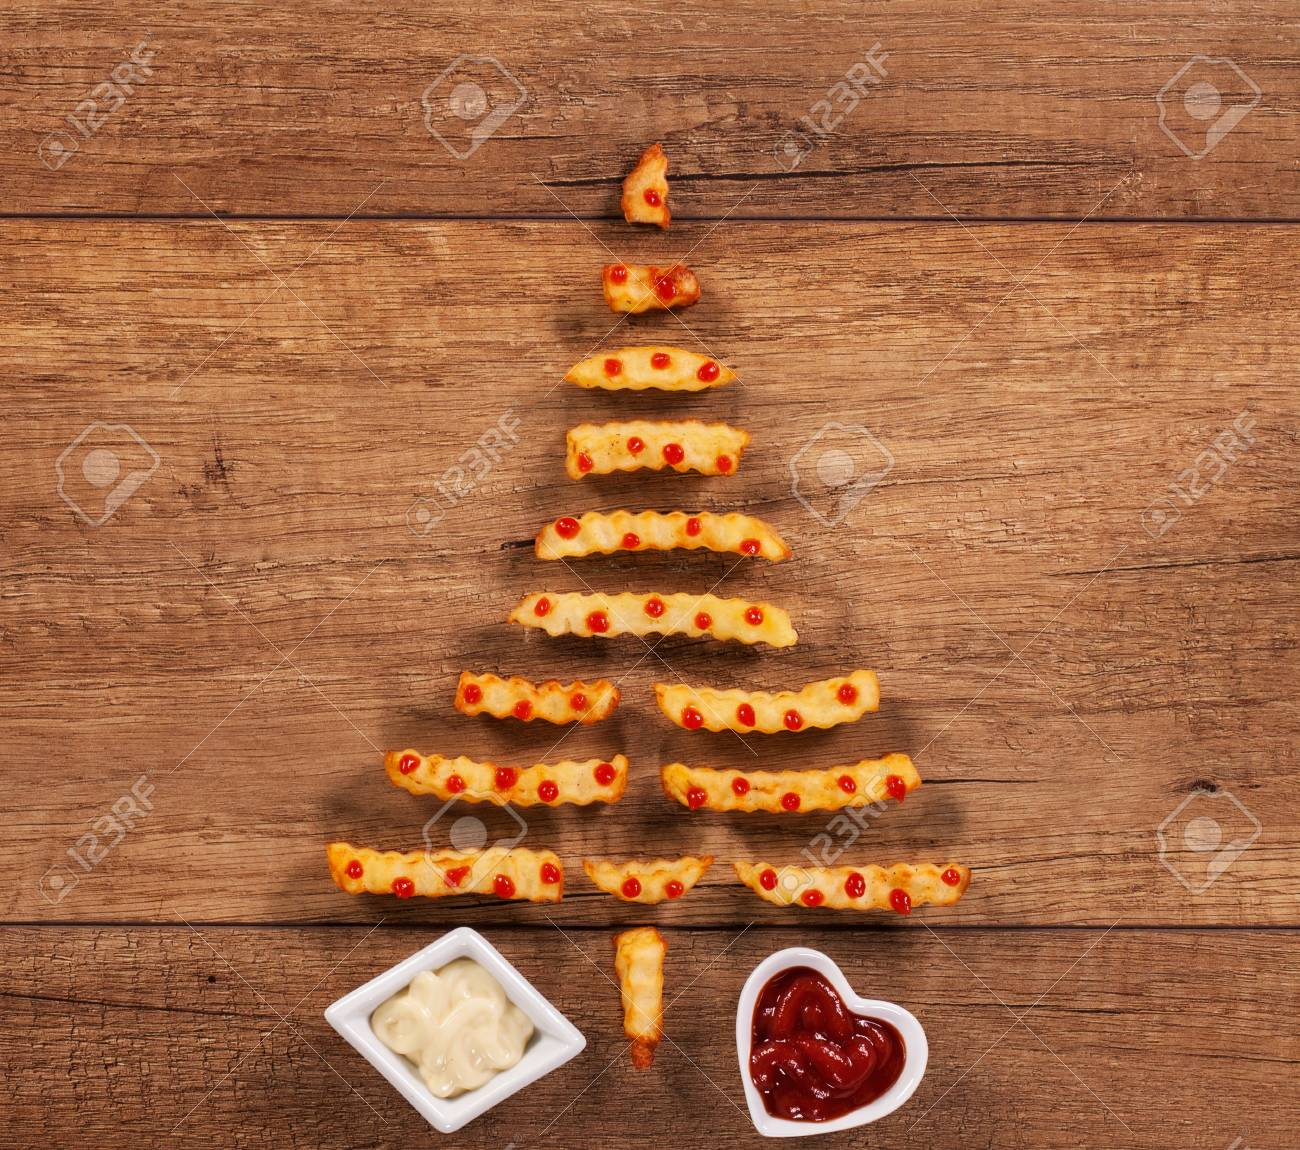 Christmas In France Food.Merry Christmas With French Fries Fast Food Xmas Tree Having